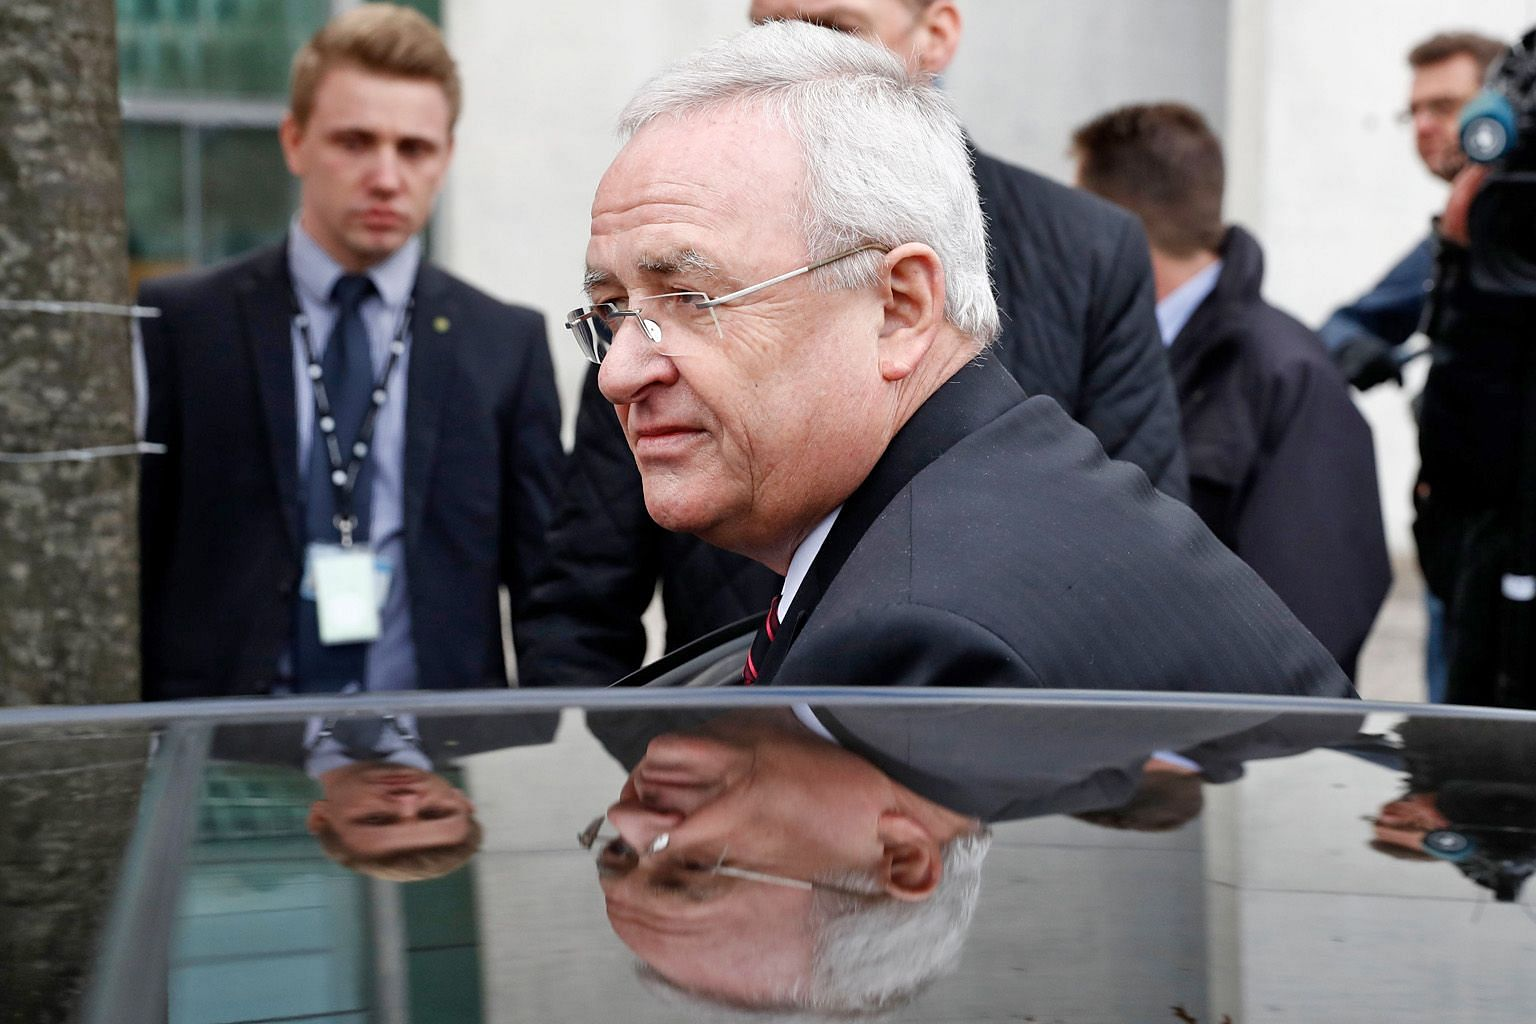 Former Volkswagen boss Martin Winterkorn stepped down as chief executive in 2015, and has denied any wrongdoing. PHOTO: AGENCE FRANCE-PRESSE